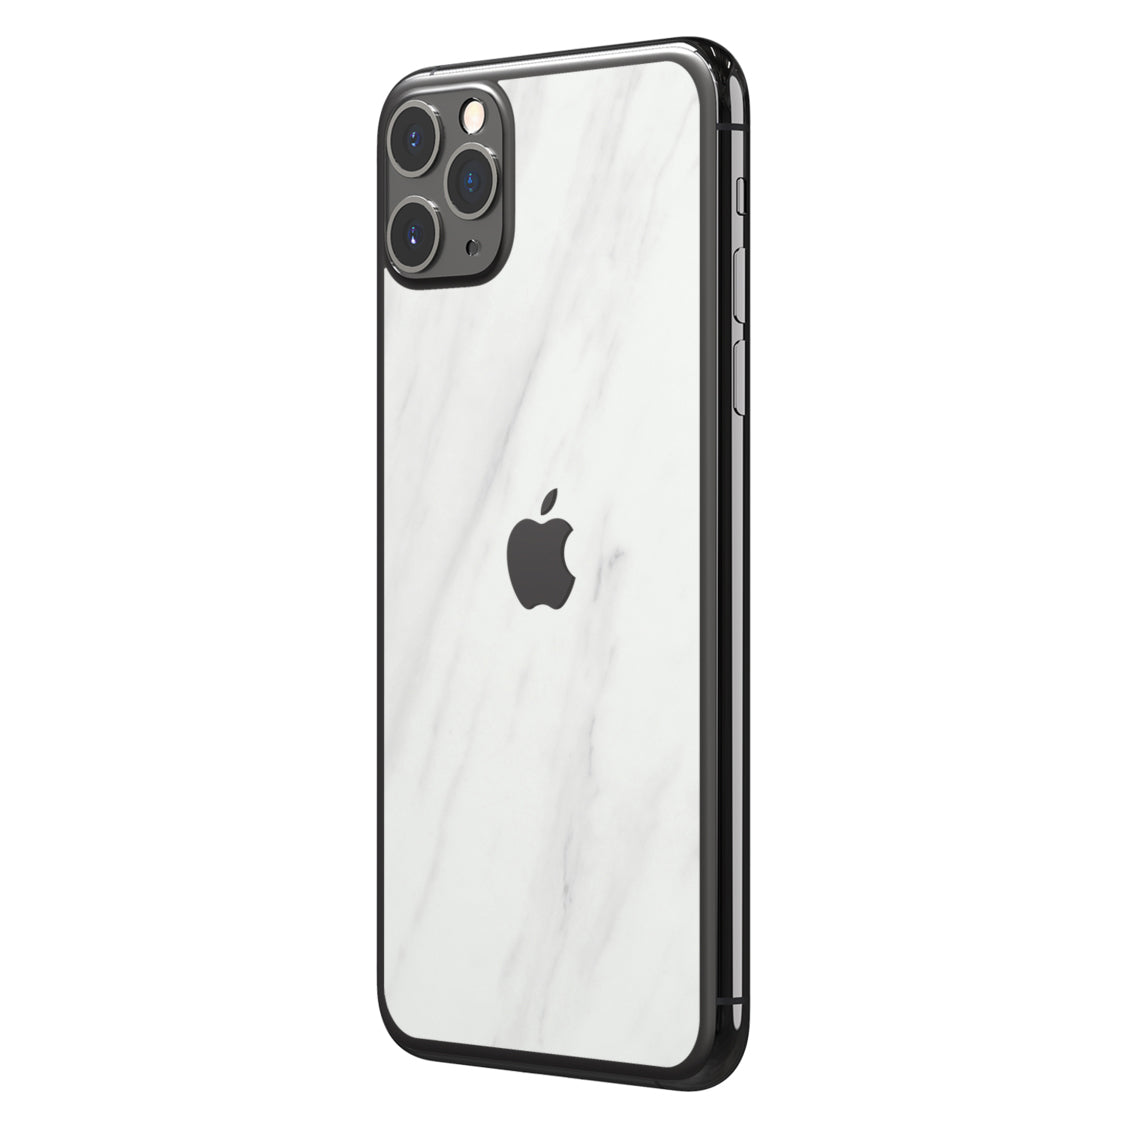 RhinoShield Impact Skin For iPhone 11 Pro Max - White Marble - Macintosh Addict